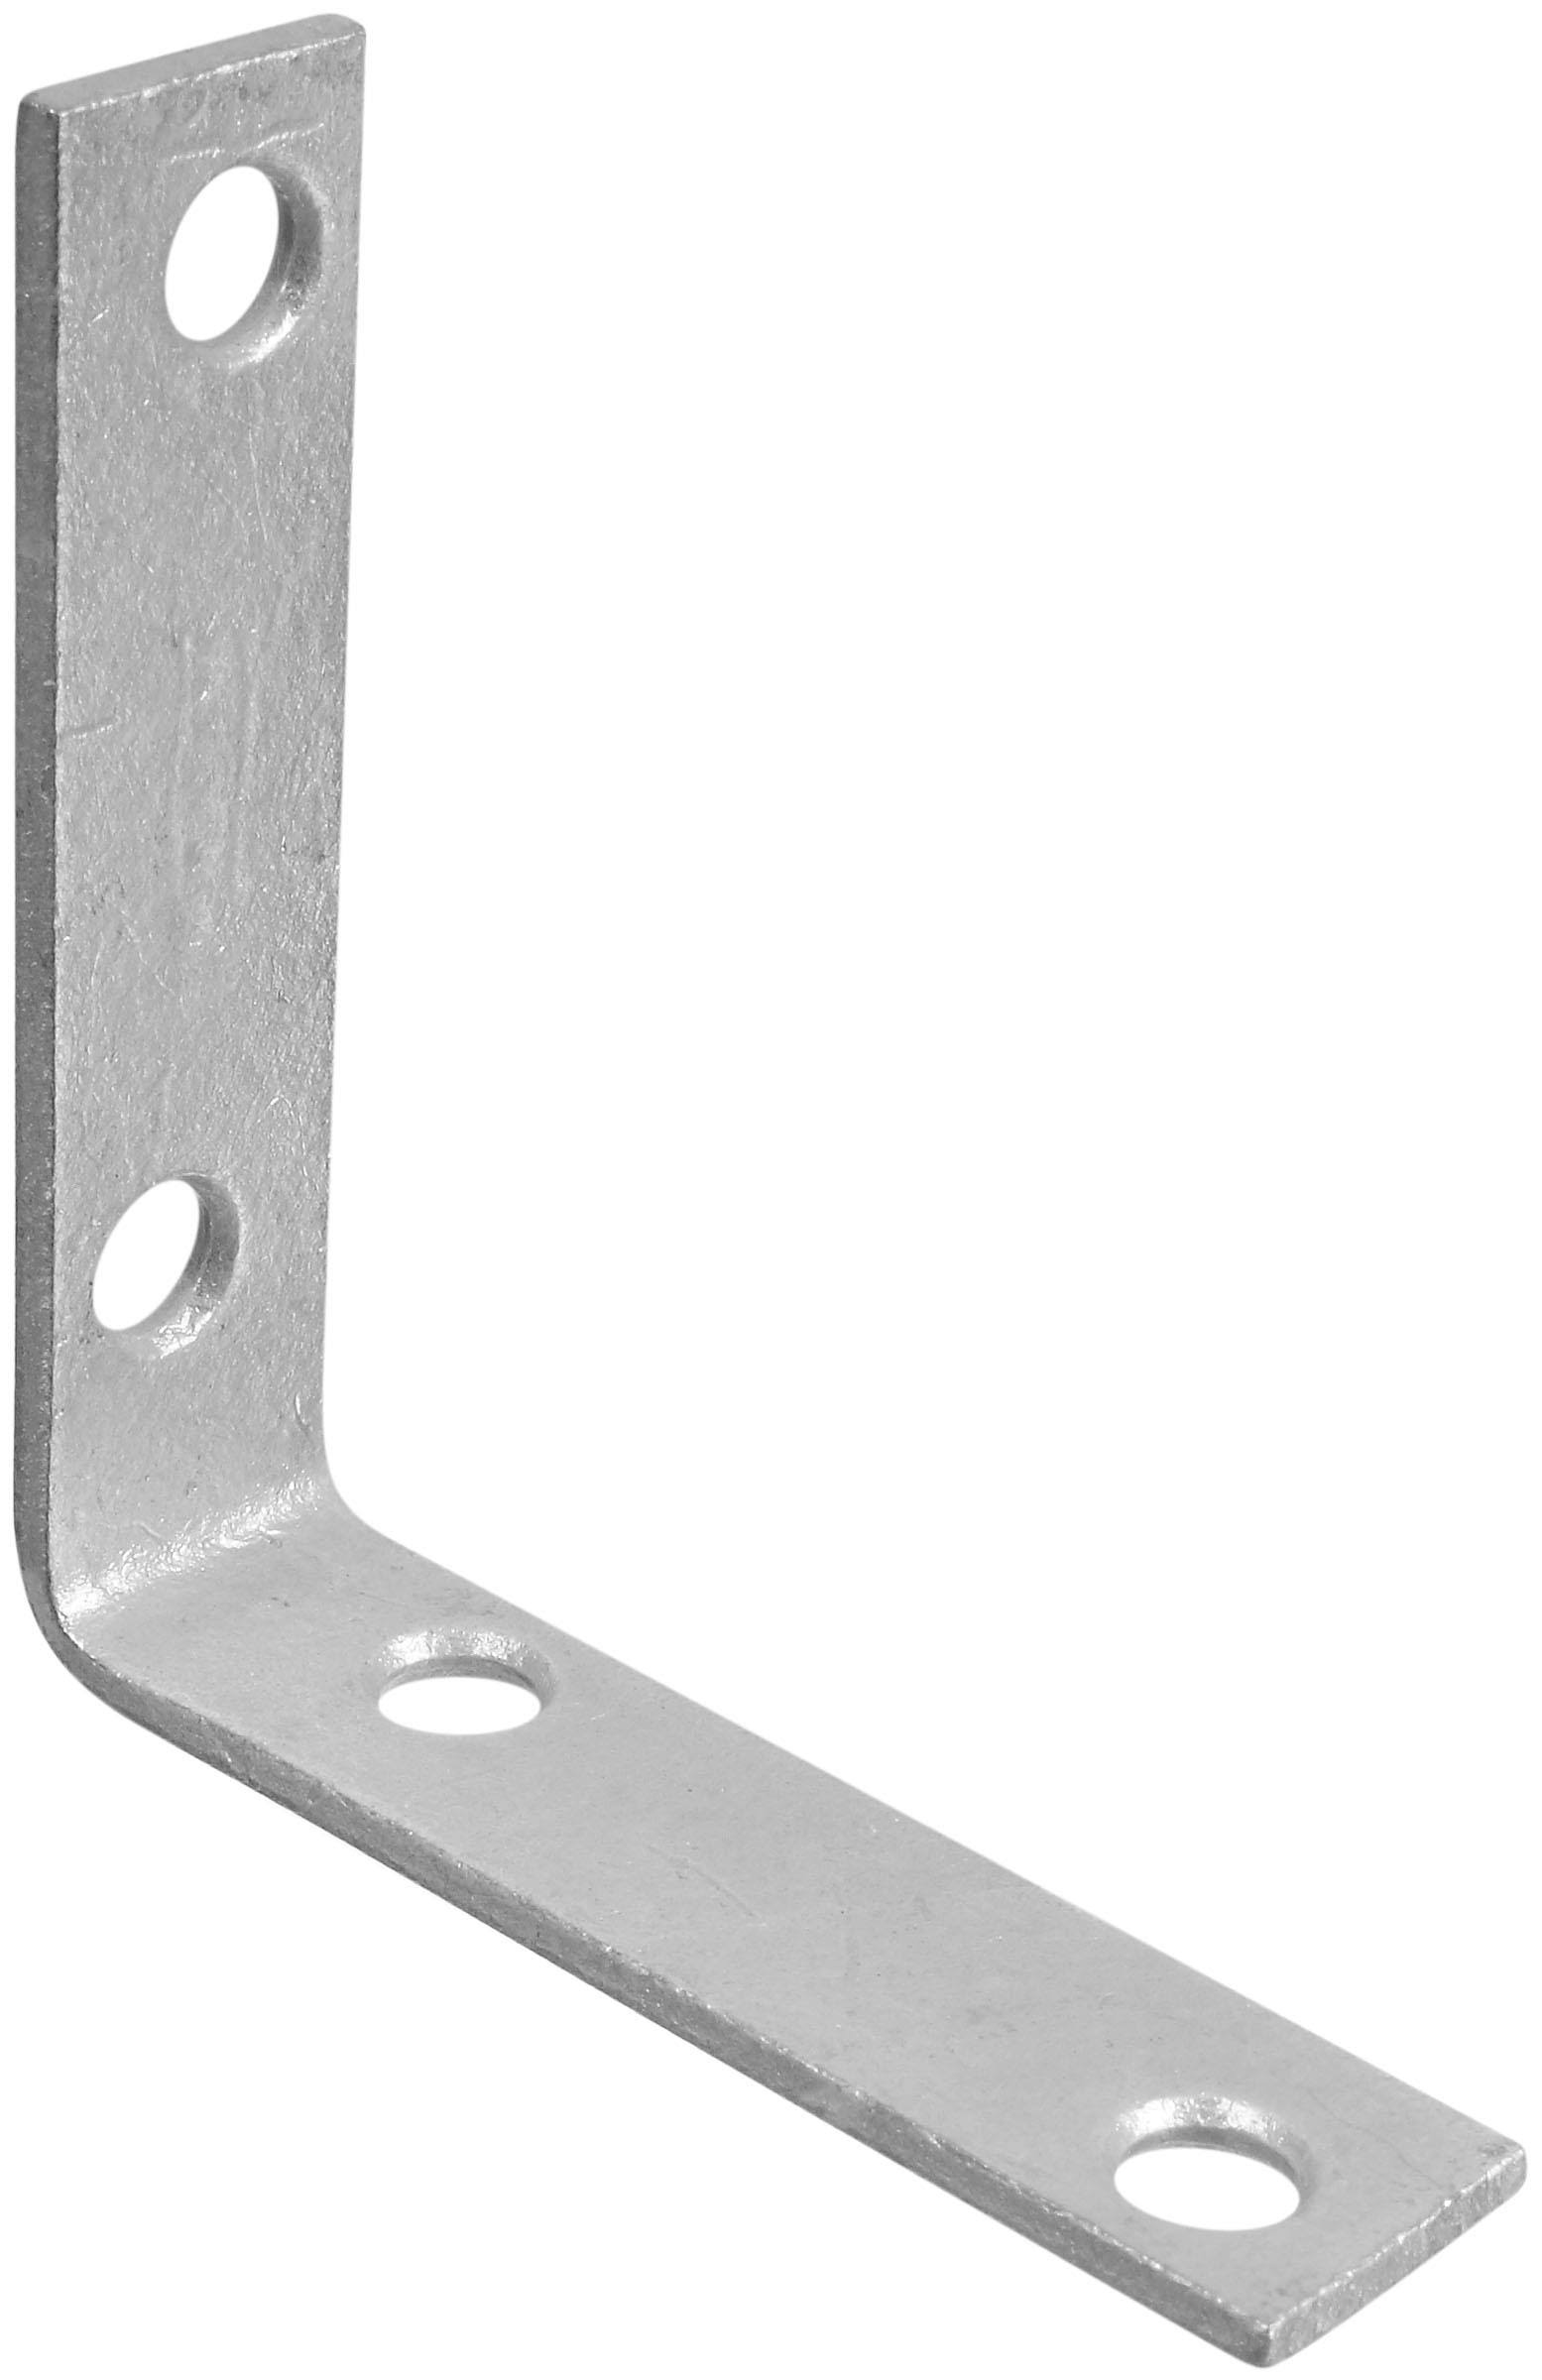 "National N208751 Corner Brace - 2 1/2"", Galvanized"